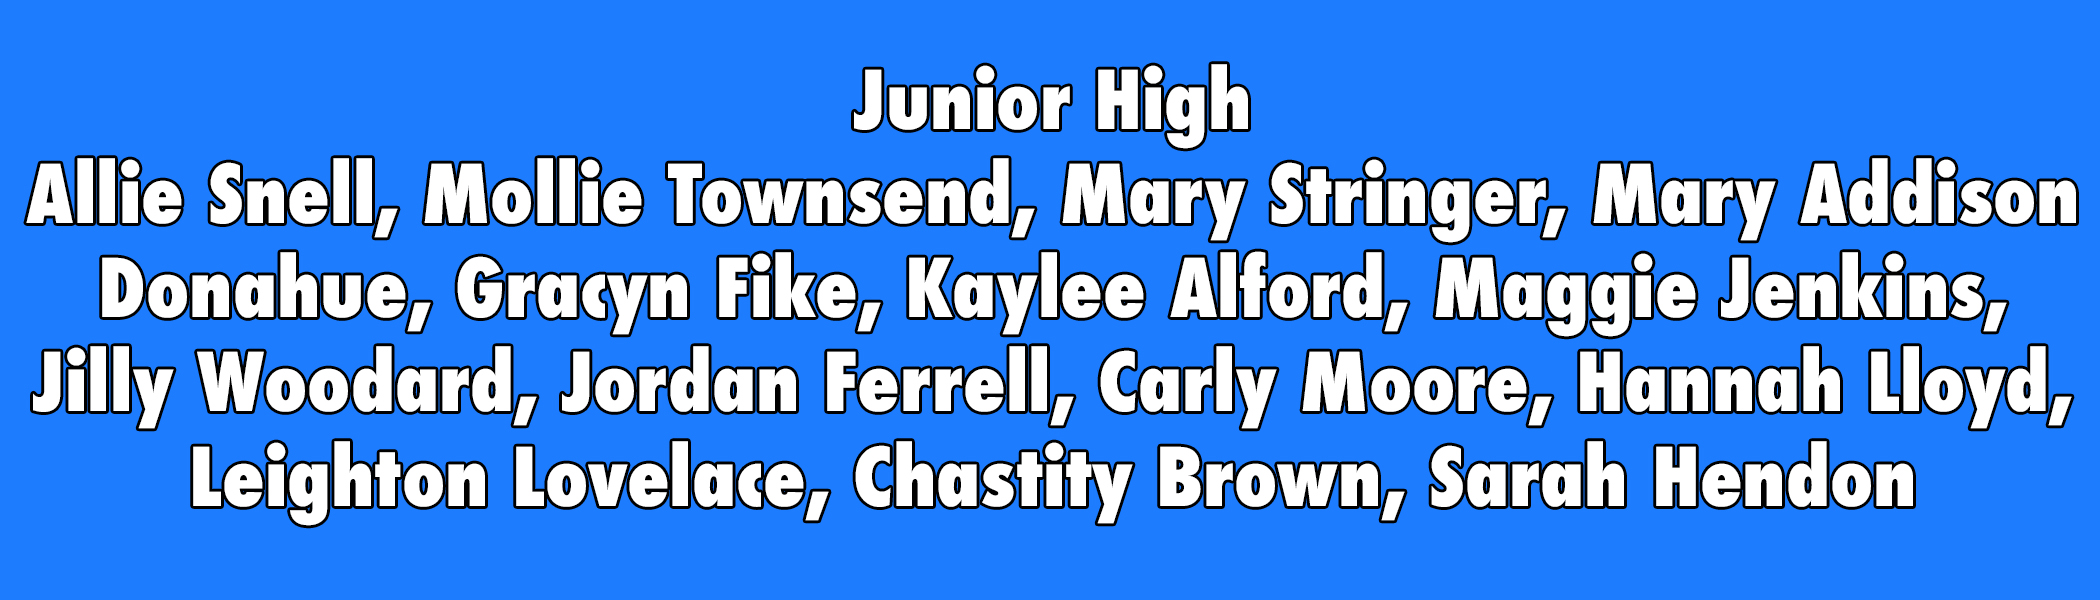 Junior High girls list